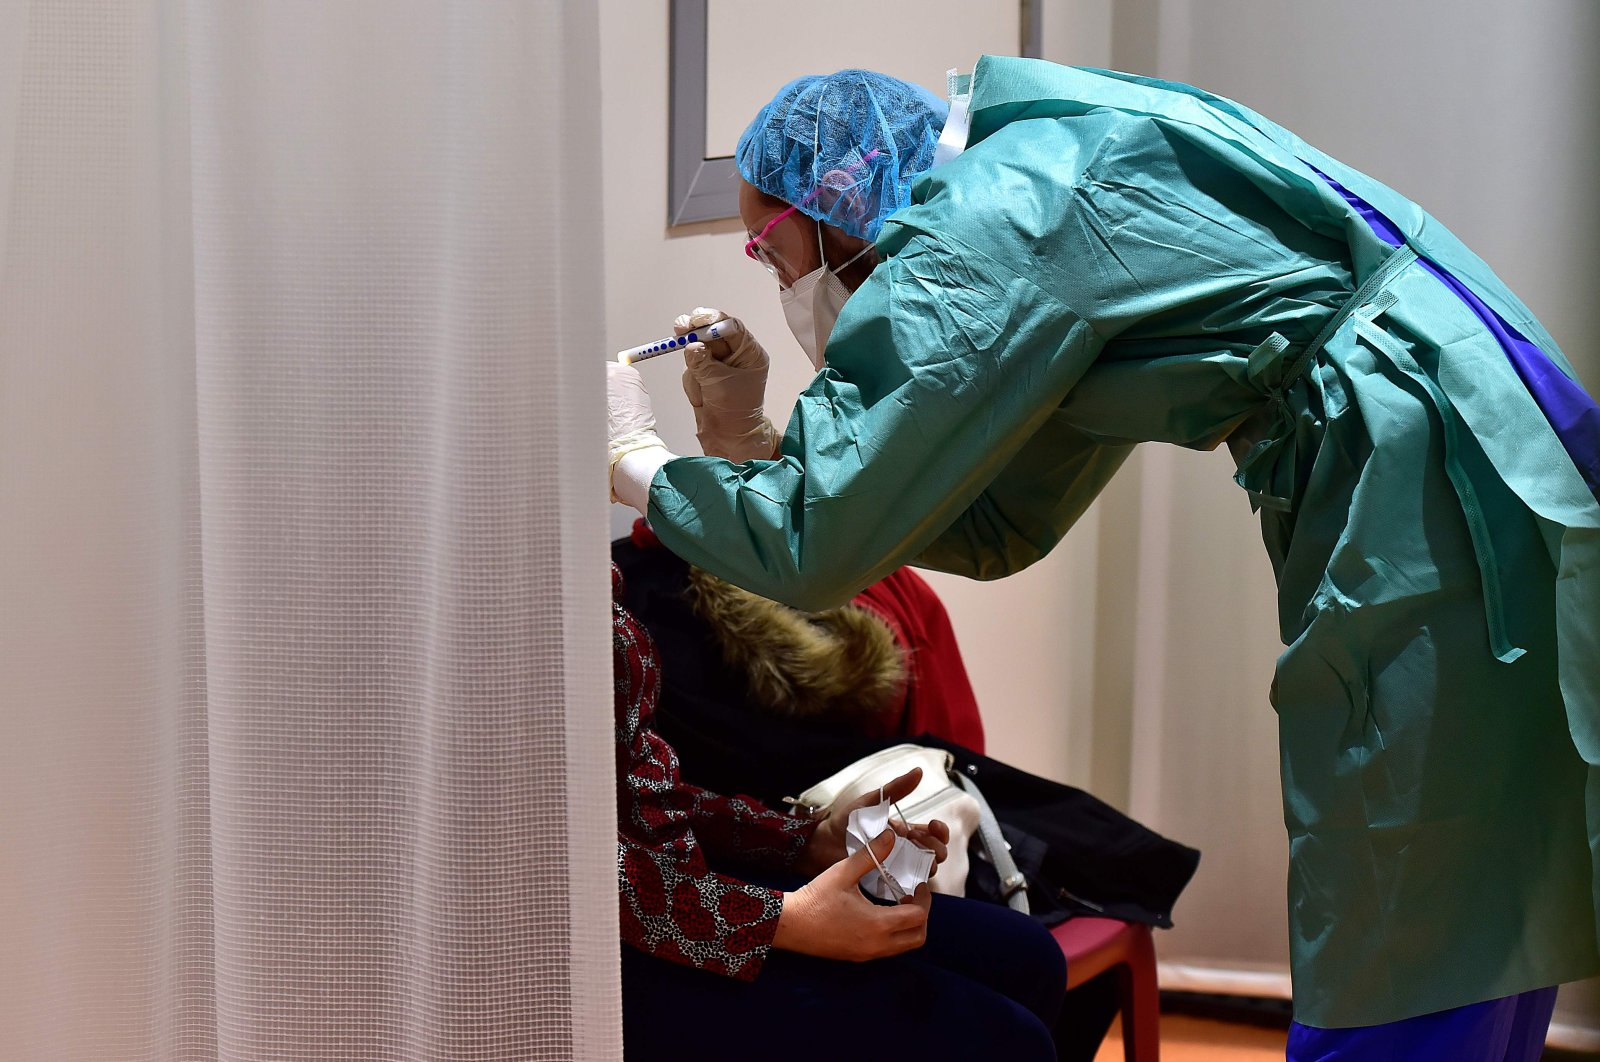 A doctor examines a patient at the hospital screening unit of the CHU Pellegrin in Bordeaux, southwestern France on March 9, 2020. (AFP Photo)